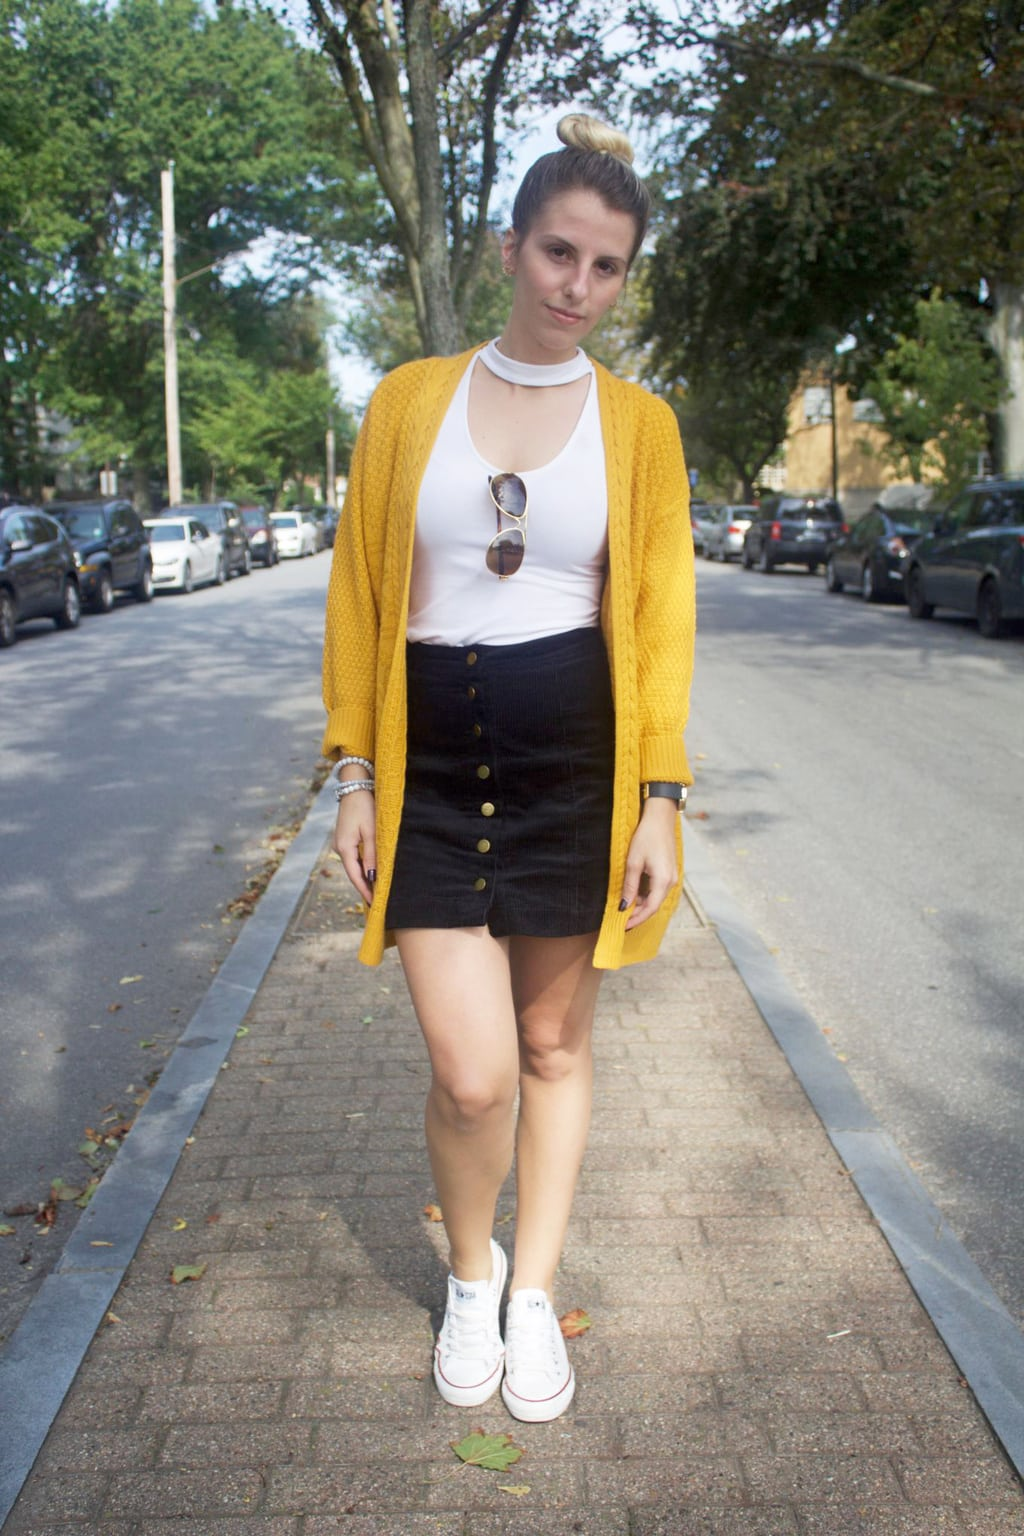 Casual student style: University of Bridgeport student Jessica wears a white top with a chunky mustard cardigan, navy button-up miniskirt, and white Converse sneakers. She tops off her look with some simple aviators and a topknot.